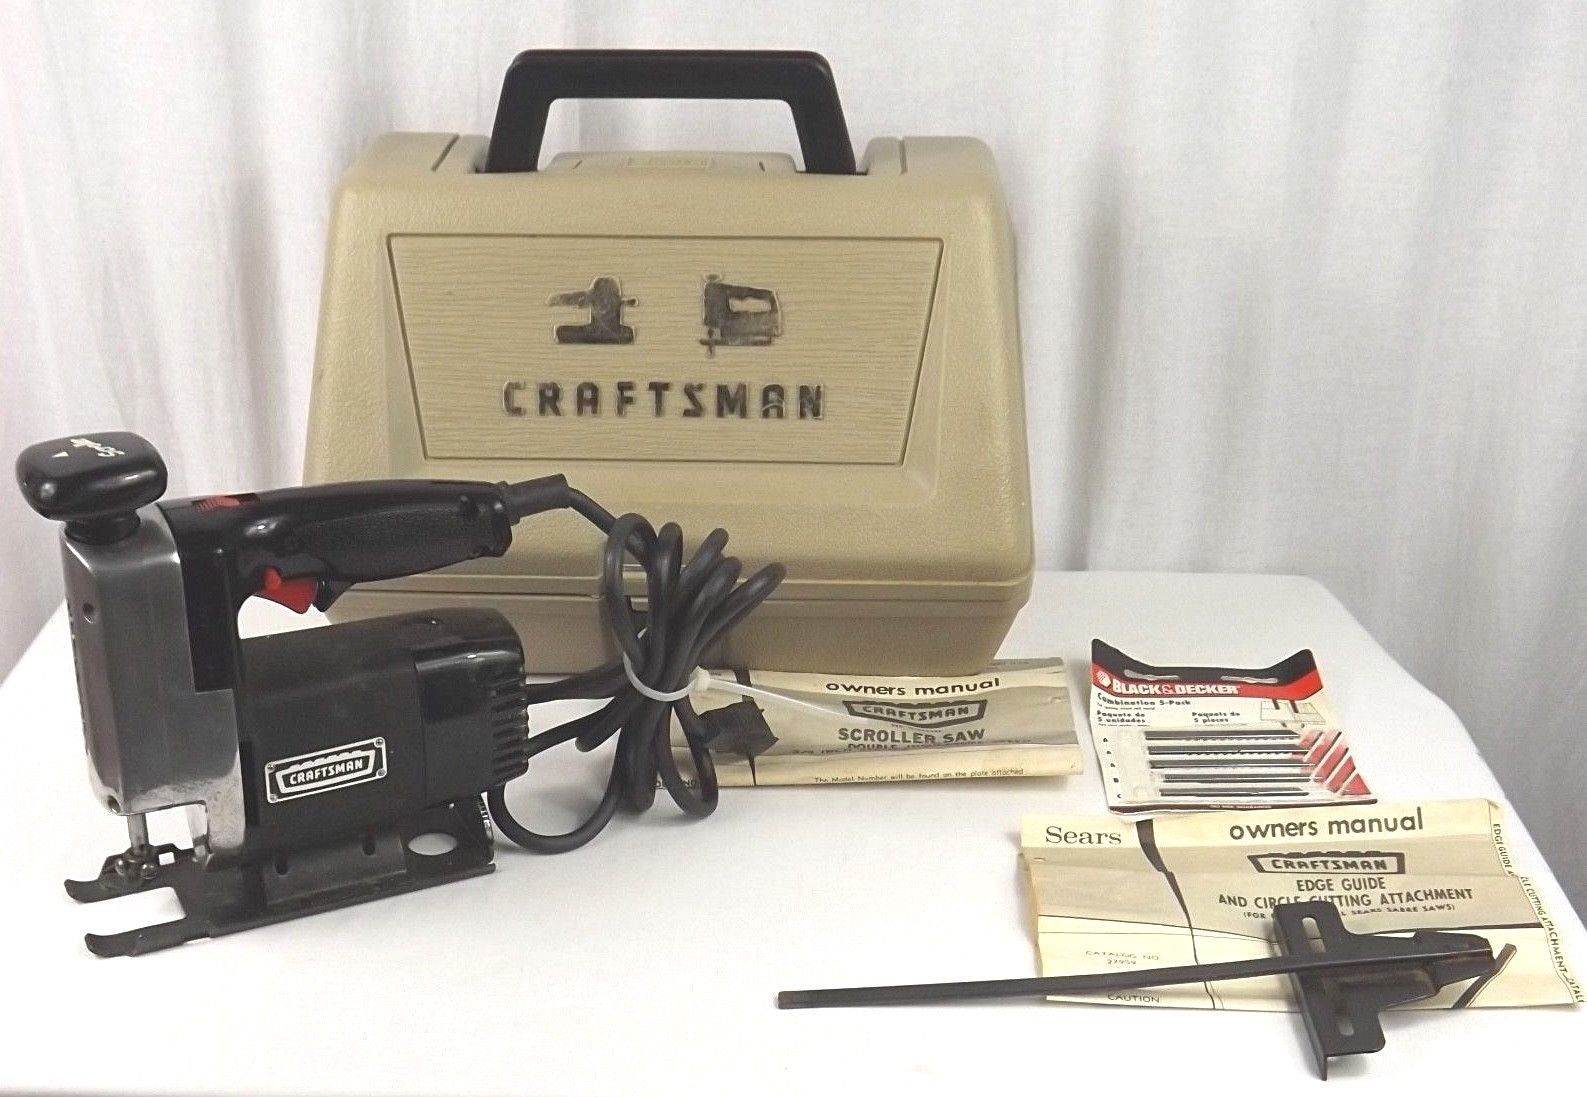 Vintage & Tested Sears Craftsman # 315 17250 and 30 similar items